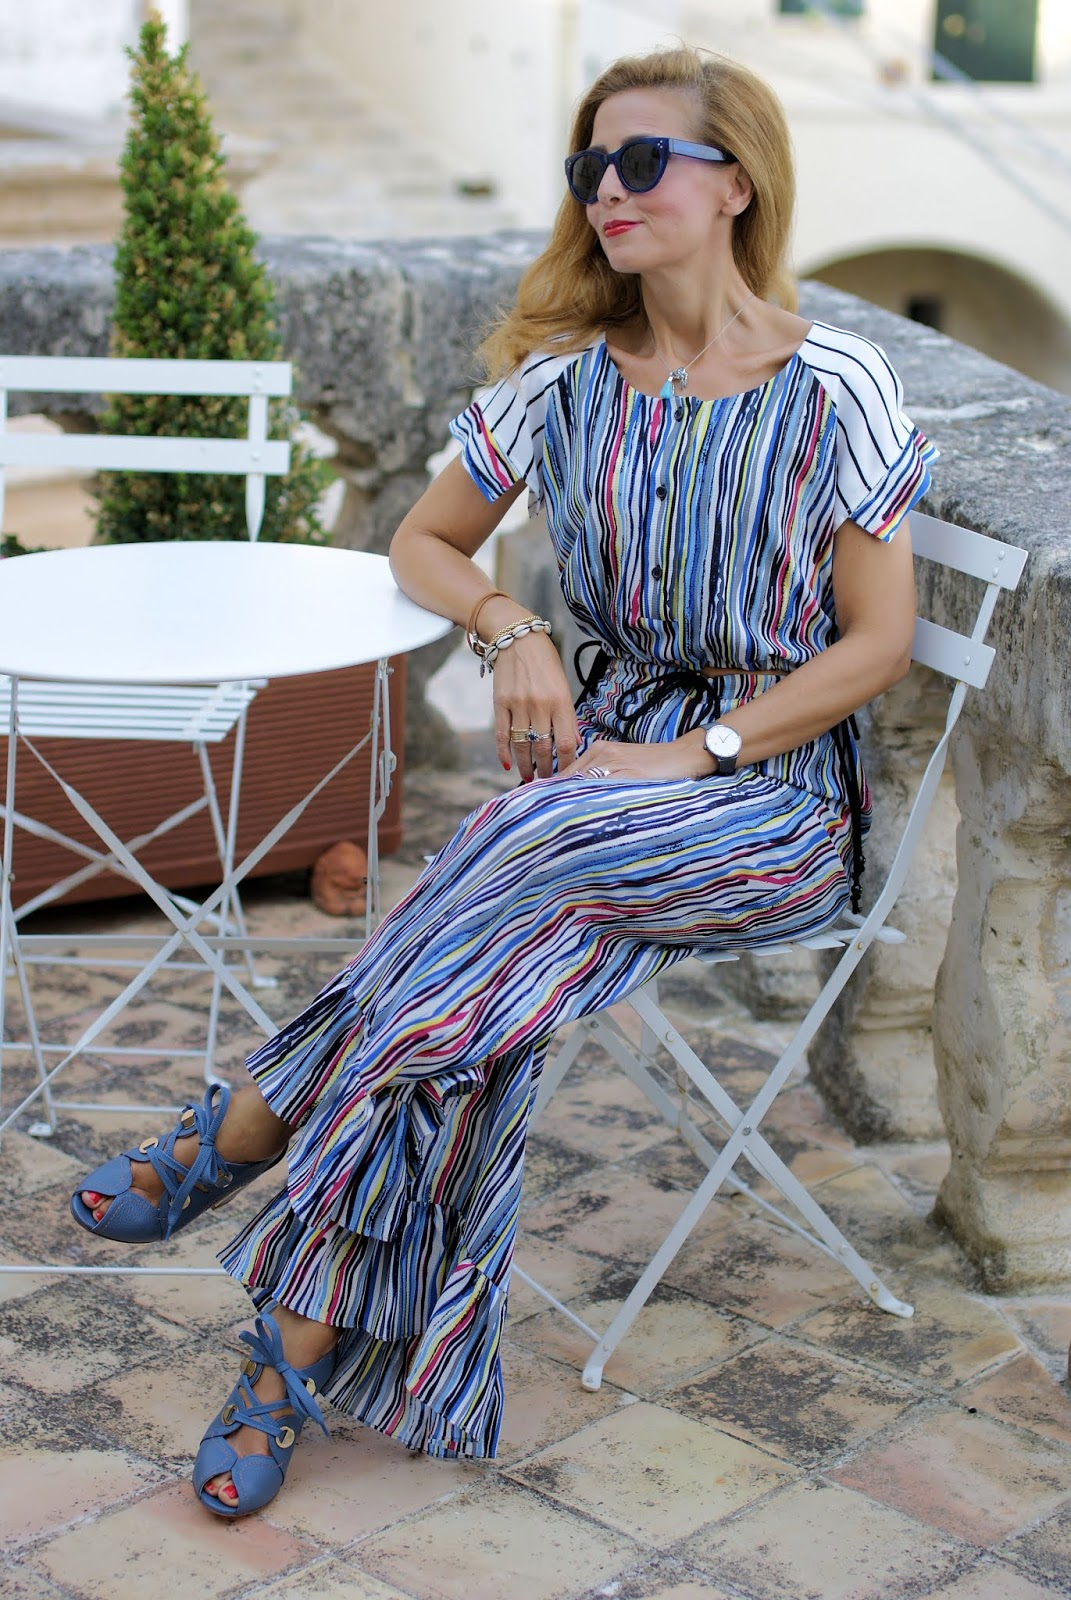 Ruffle palazzo pants and crop top: 70s inspired outfit and Giovanni Fabiani shoes on Fashion and Cookies fashion blog, fashion blogger style